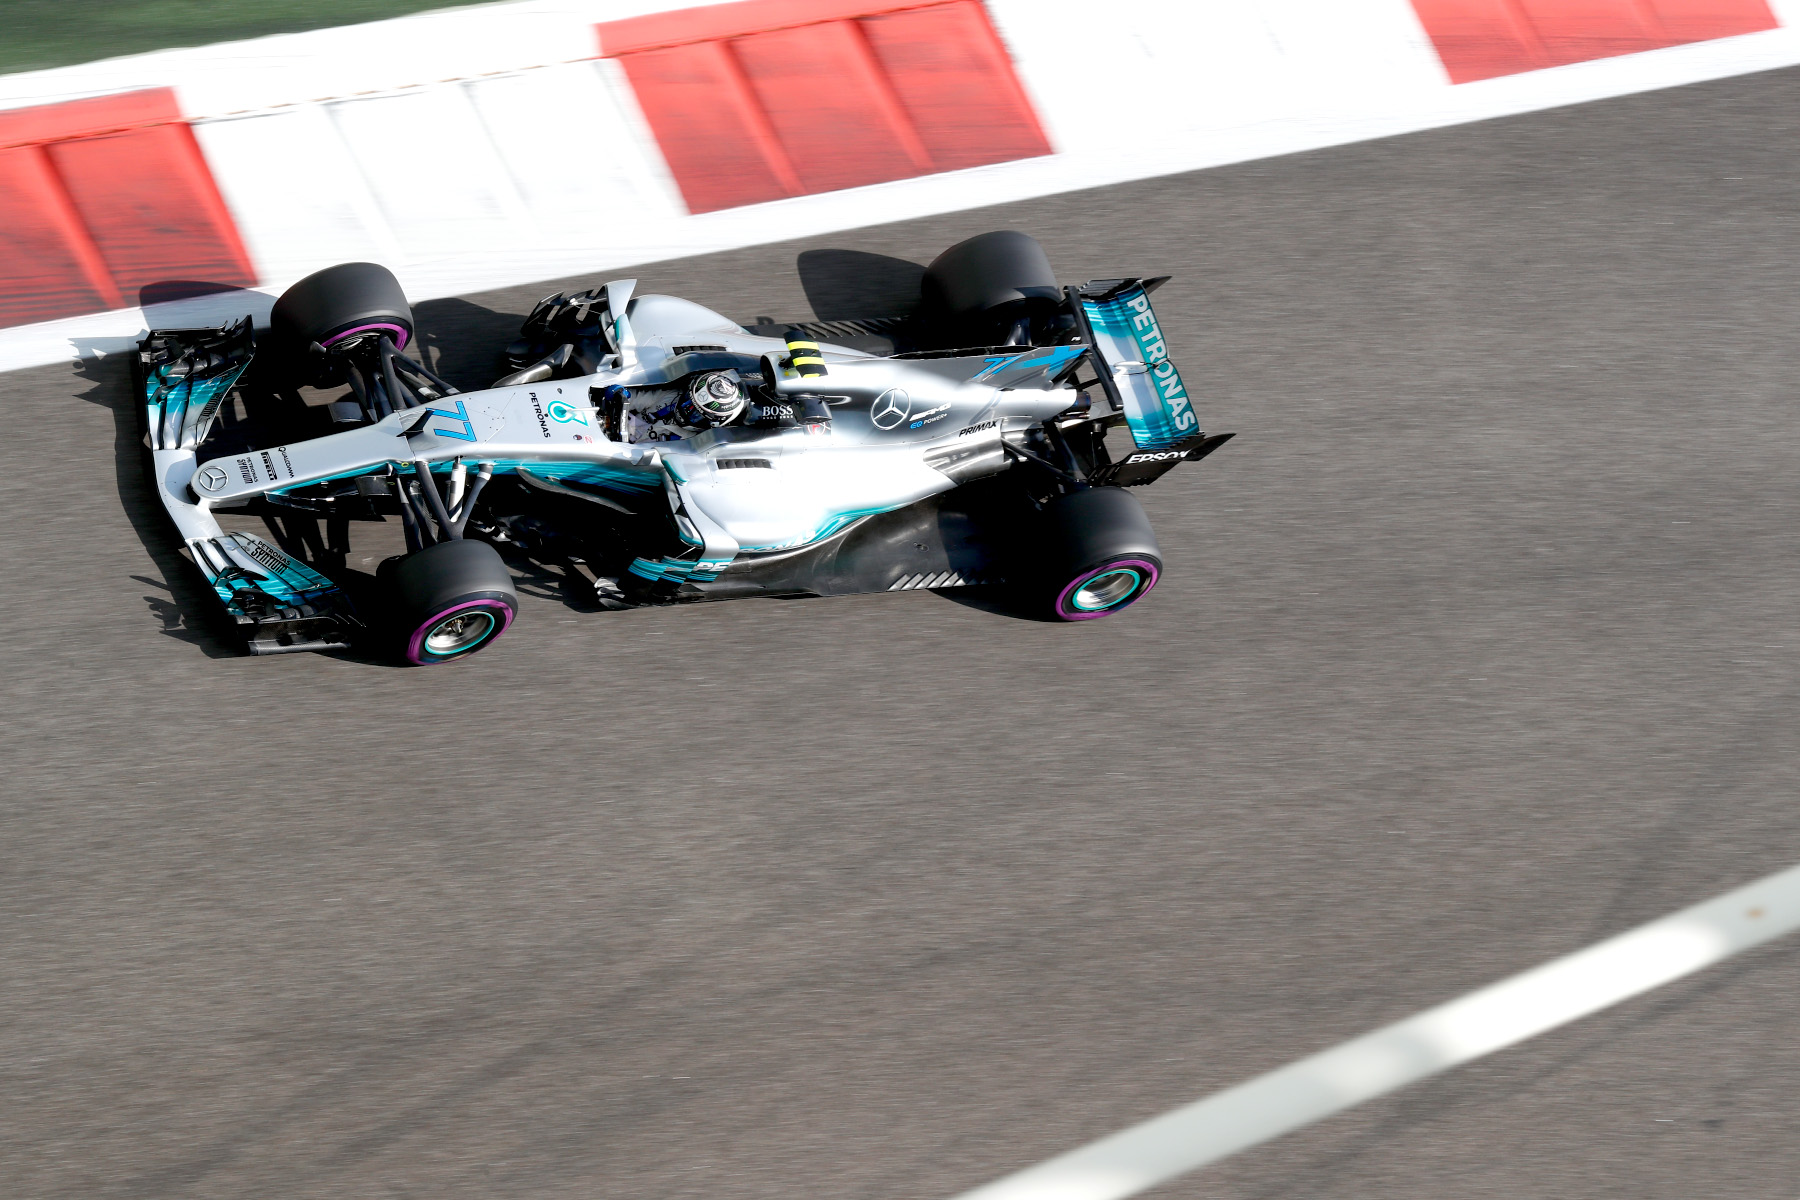 Valtteri Bottas on track at the 2017 Abu Dhabi Grand Prix